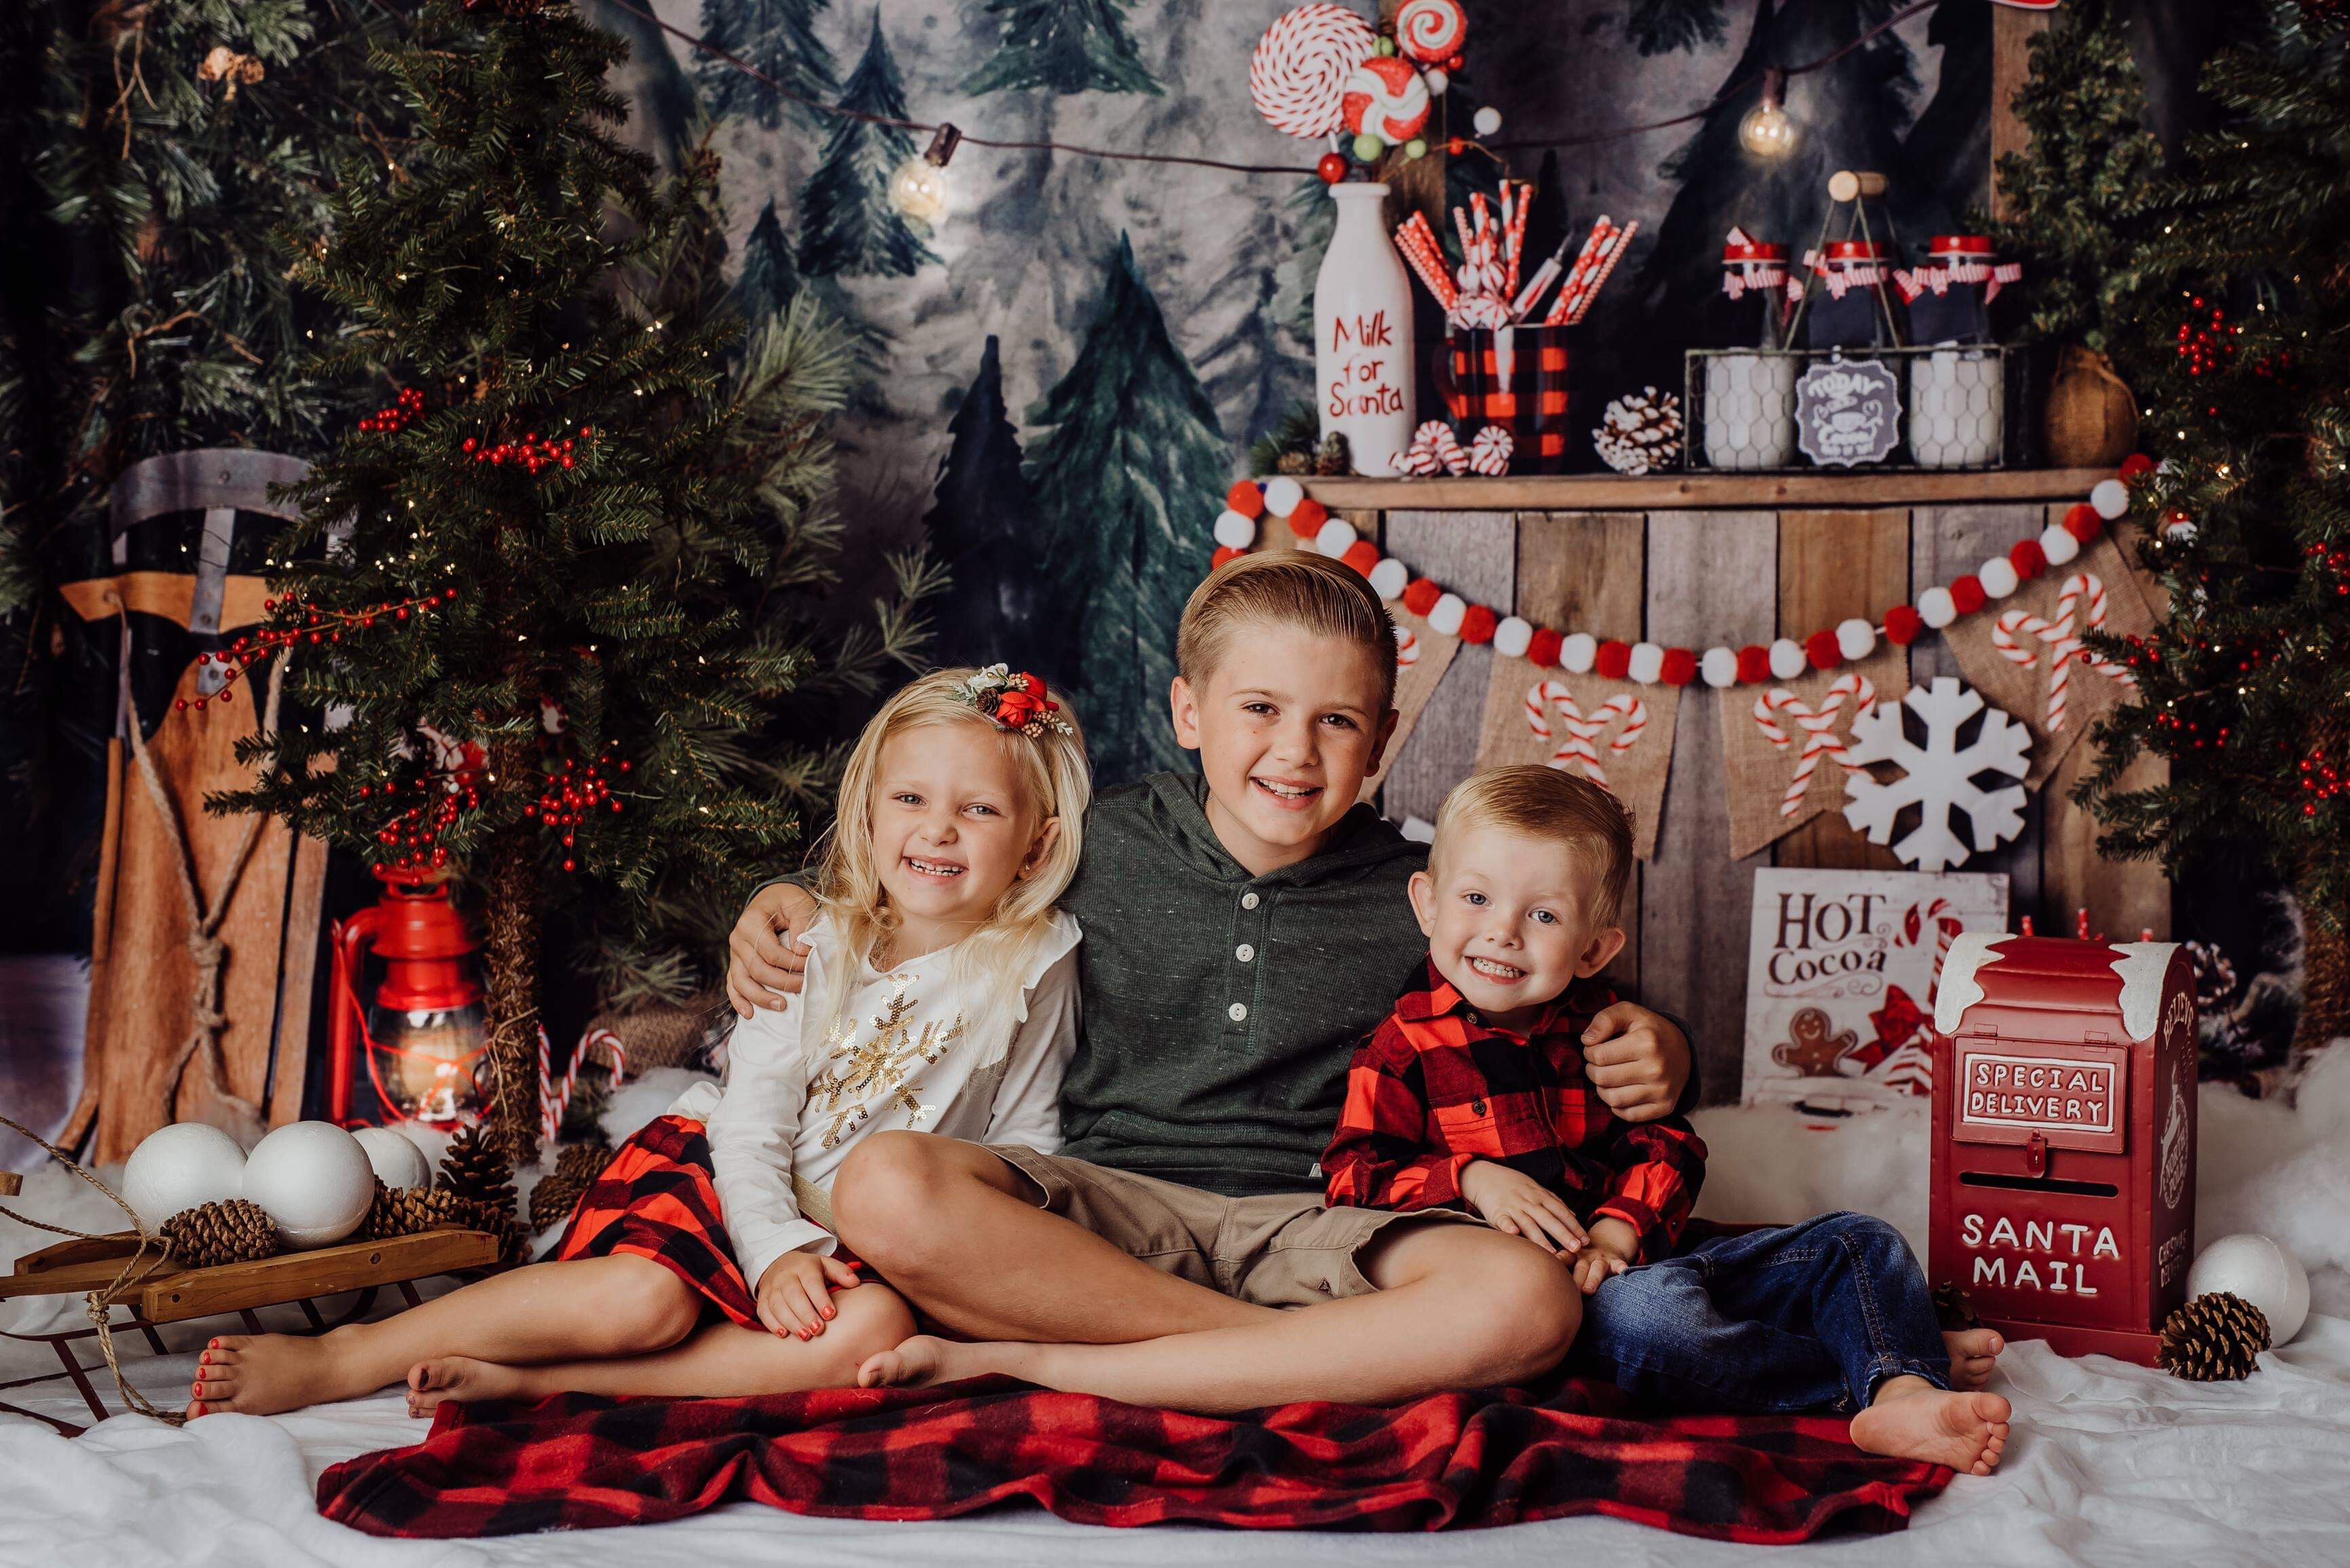 Indoor holiday mini session for Christmas cards! Oahu studio